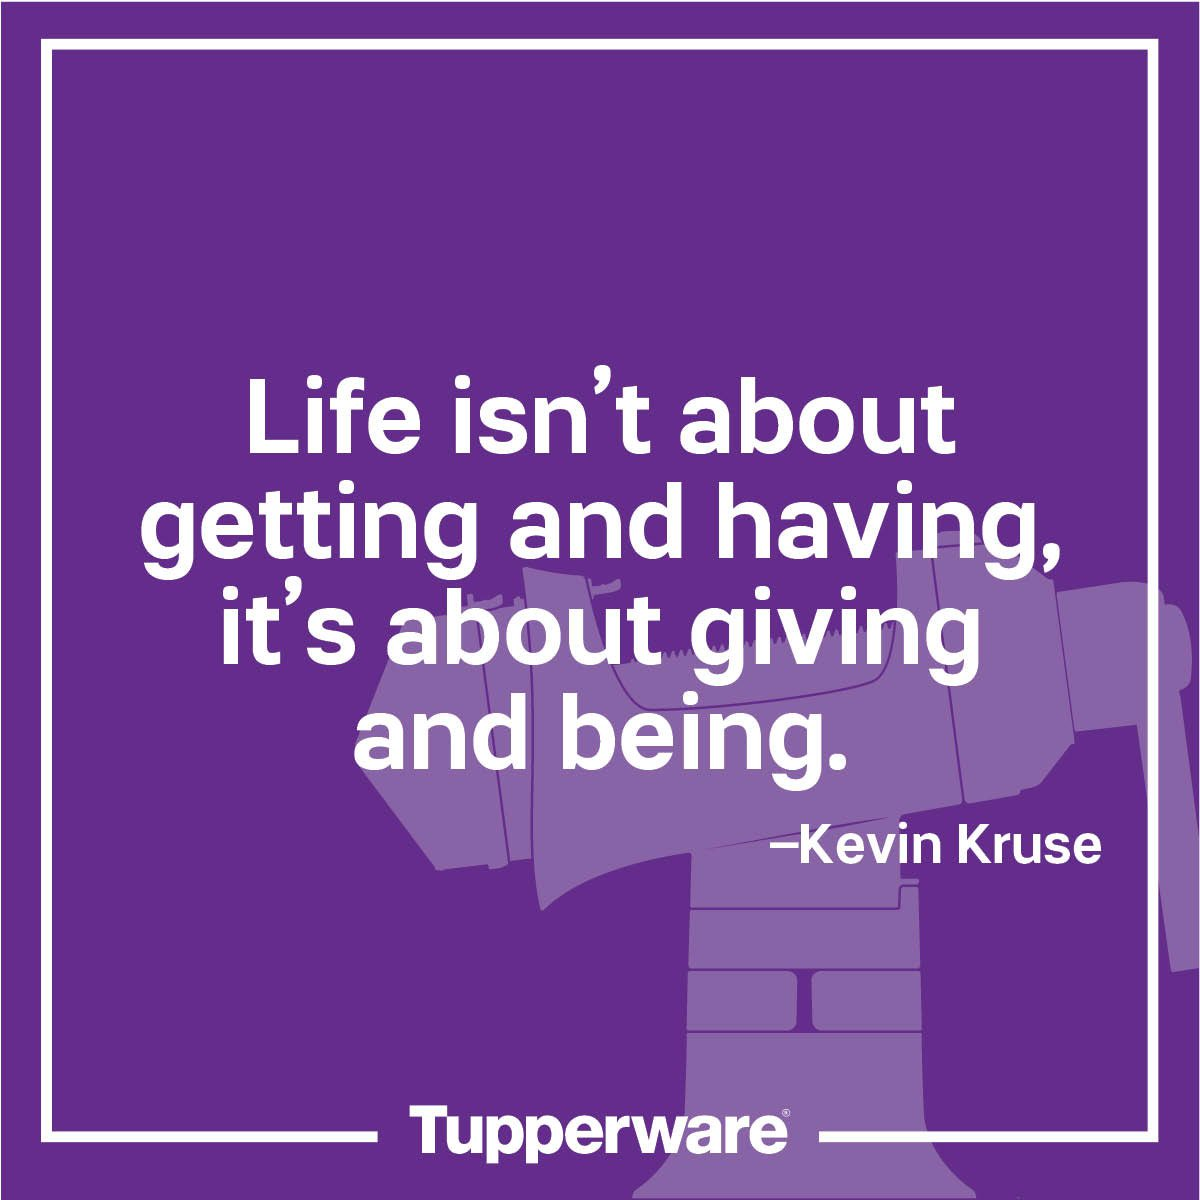 https:// dianascoles.my.tupperware.com/?utm_medium=ow nedsocial&amp;utm_campaign=mb%7Cgeneral&amp;utm_source=twitter &nbsp; …   Give Tupperware a try &amp; see what Tupperware Gives YOU!  #beyourownboss #Tupperware<br>http://pic.twitter.com/UqlRVfSPKD